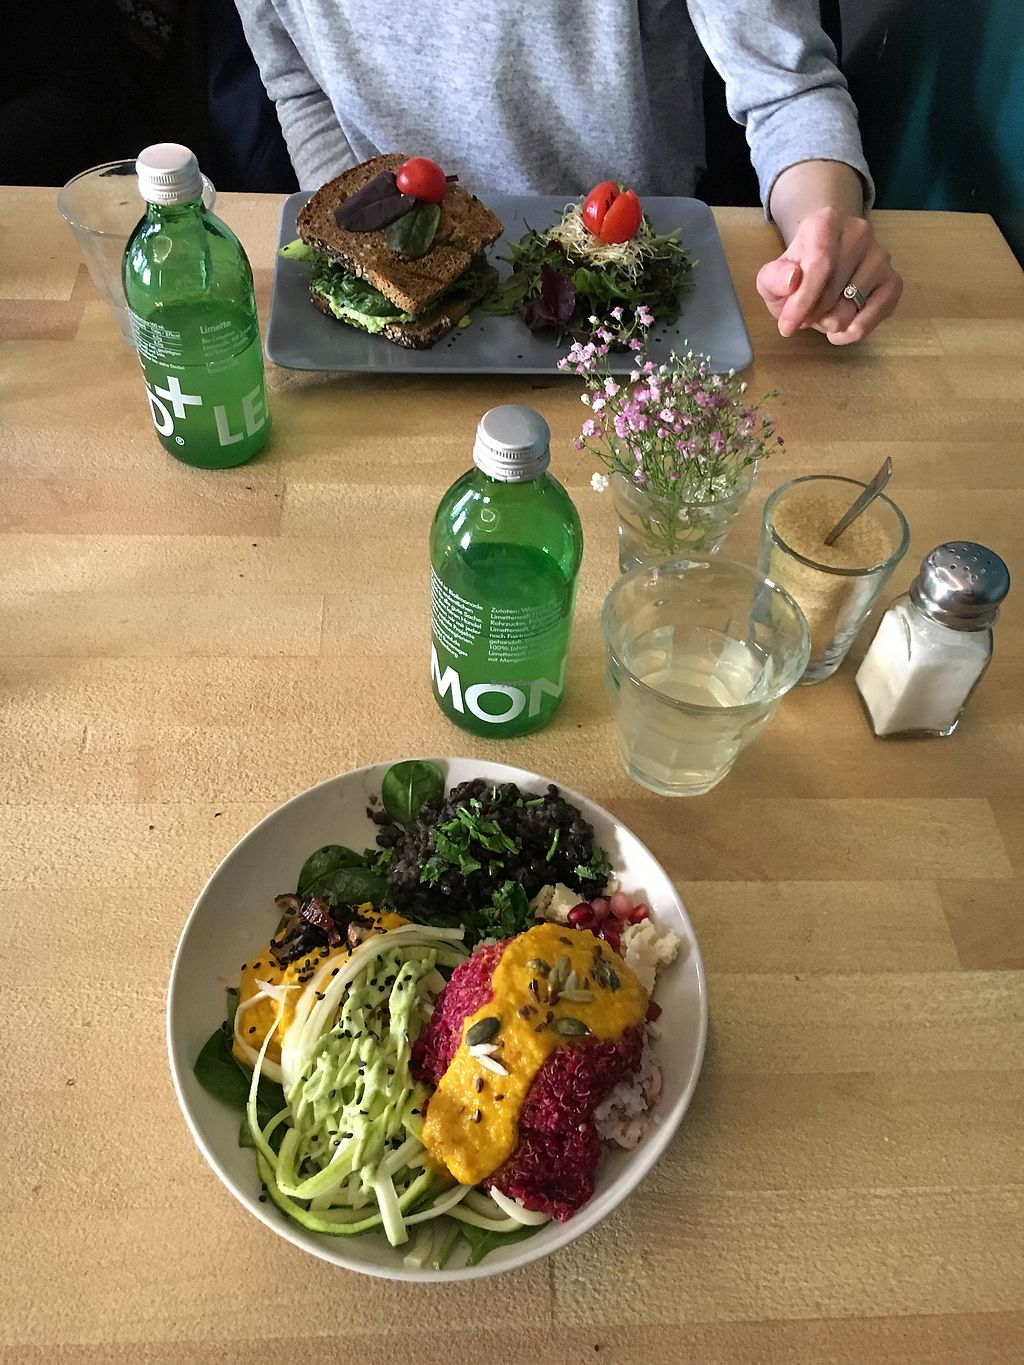 """Photo of Manafood  by <a href=""""/members/profile/JouniK%C3%A4rpp%C3%A4"""">JouniKärppä</a> <br/>Zoodles and black lentils. Ruby bowl <br/> February 25, 2018  - <a href='/contact/abuse/image/102480/363726'>Report</a>"""